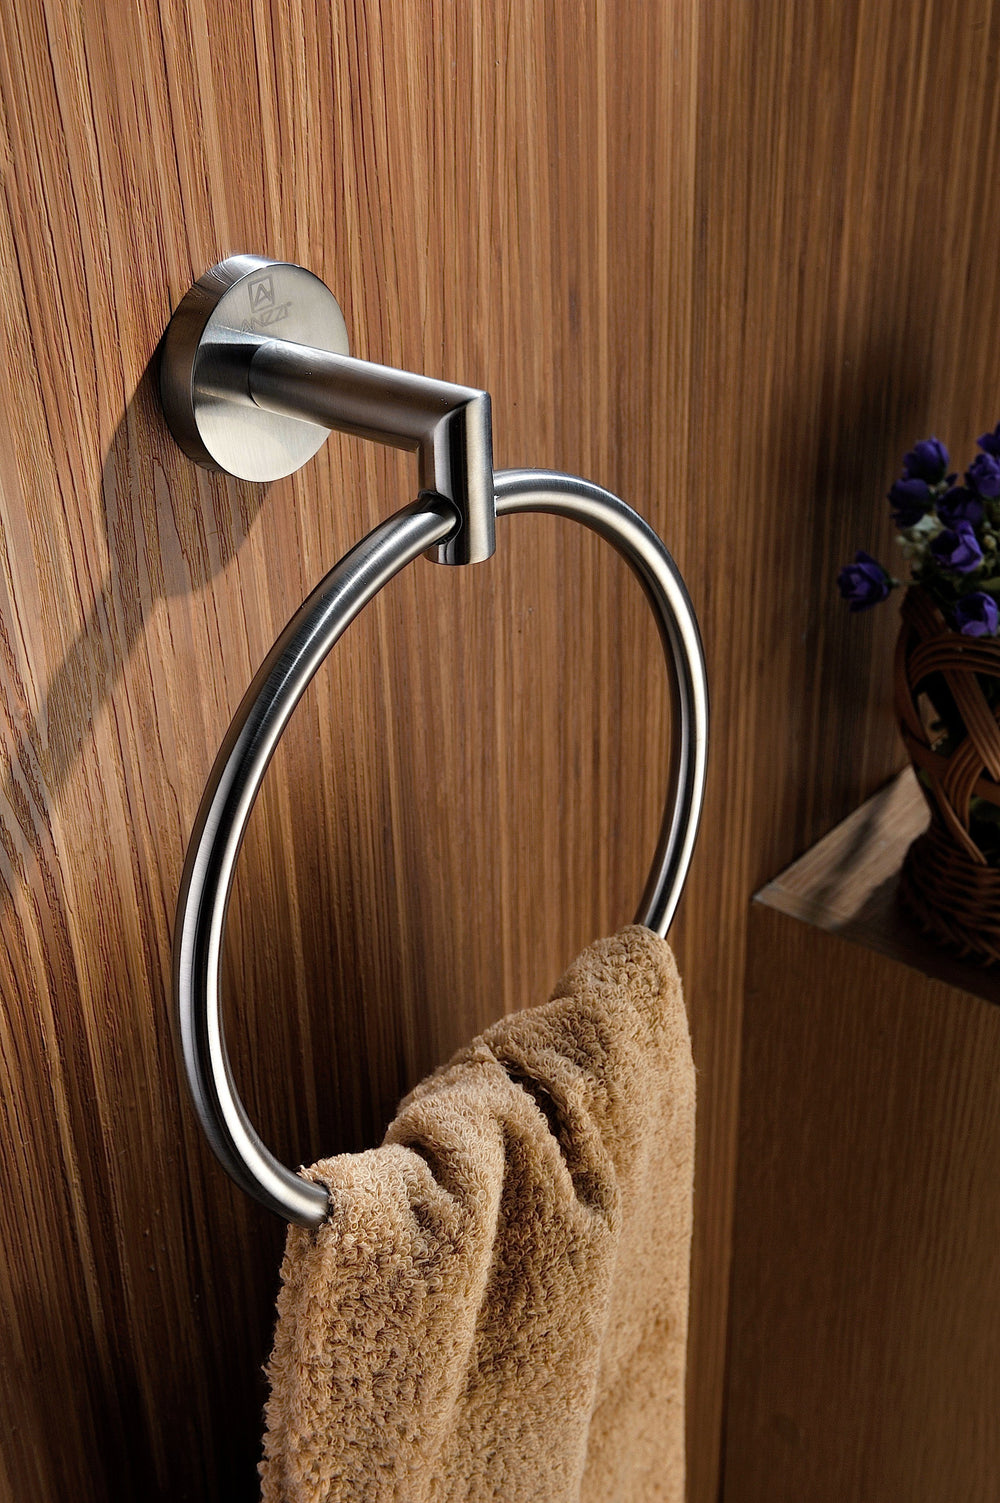 ANZZI Caster 2 Series Towel Ring in Brushed Nickel Towel Ring ANZZI